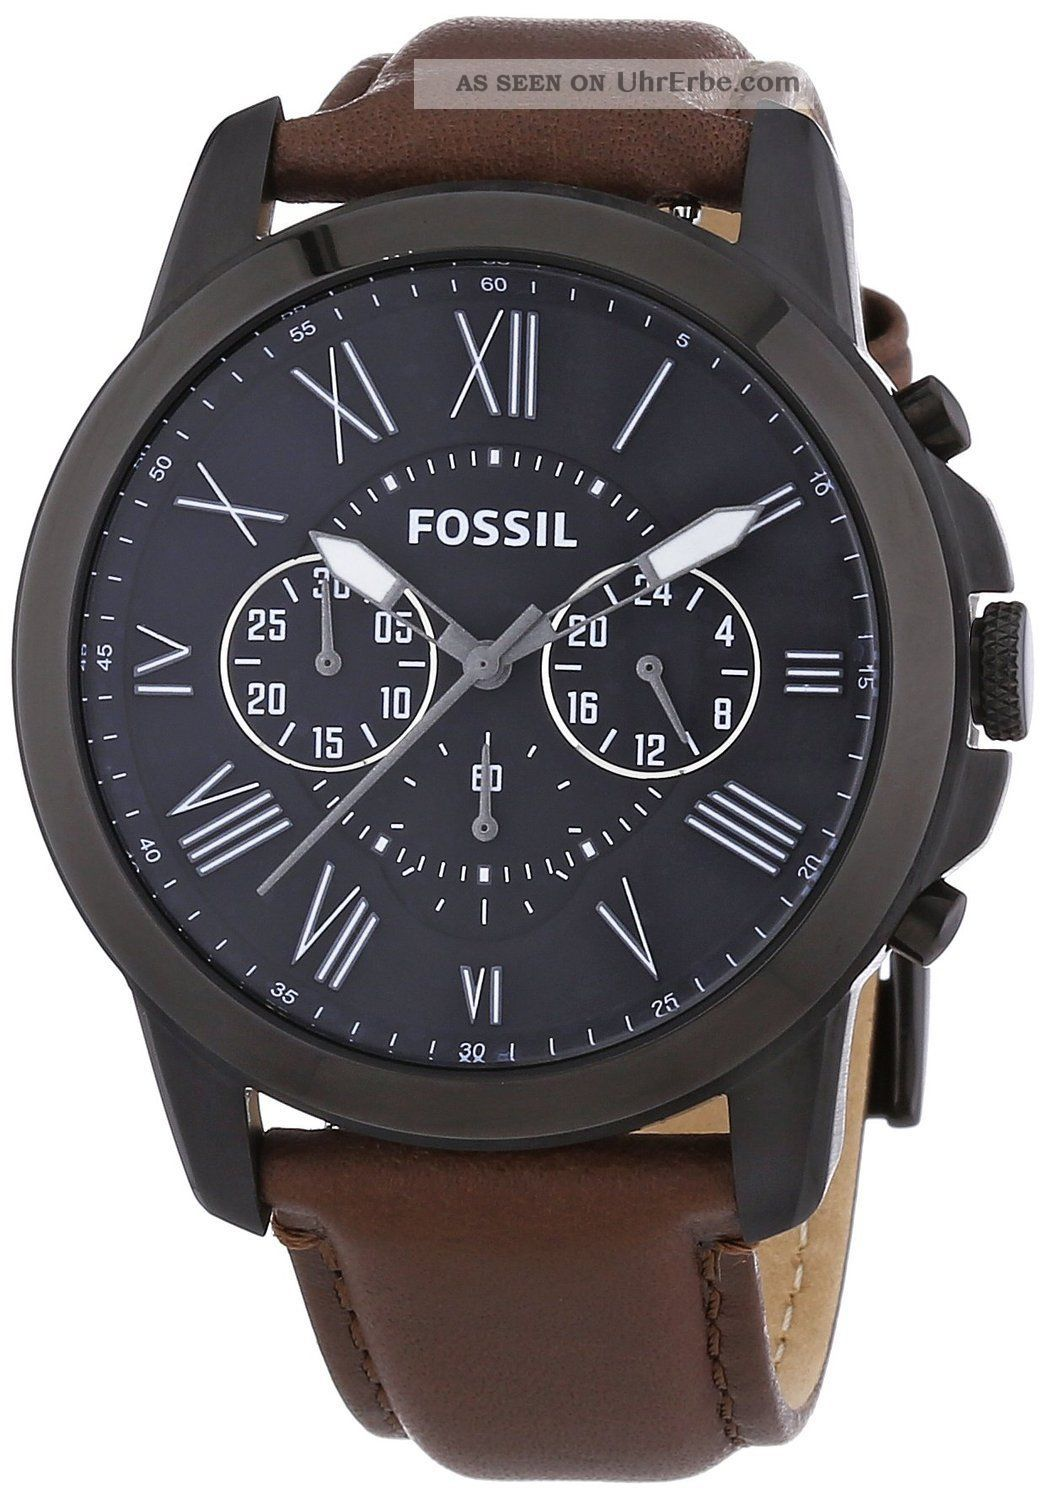 fossil herren armbanduhr xl chronograph quarz leder fs4885. Black Bedroom Furniture Sets. Home Design Ideas